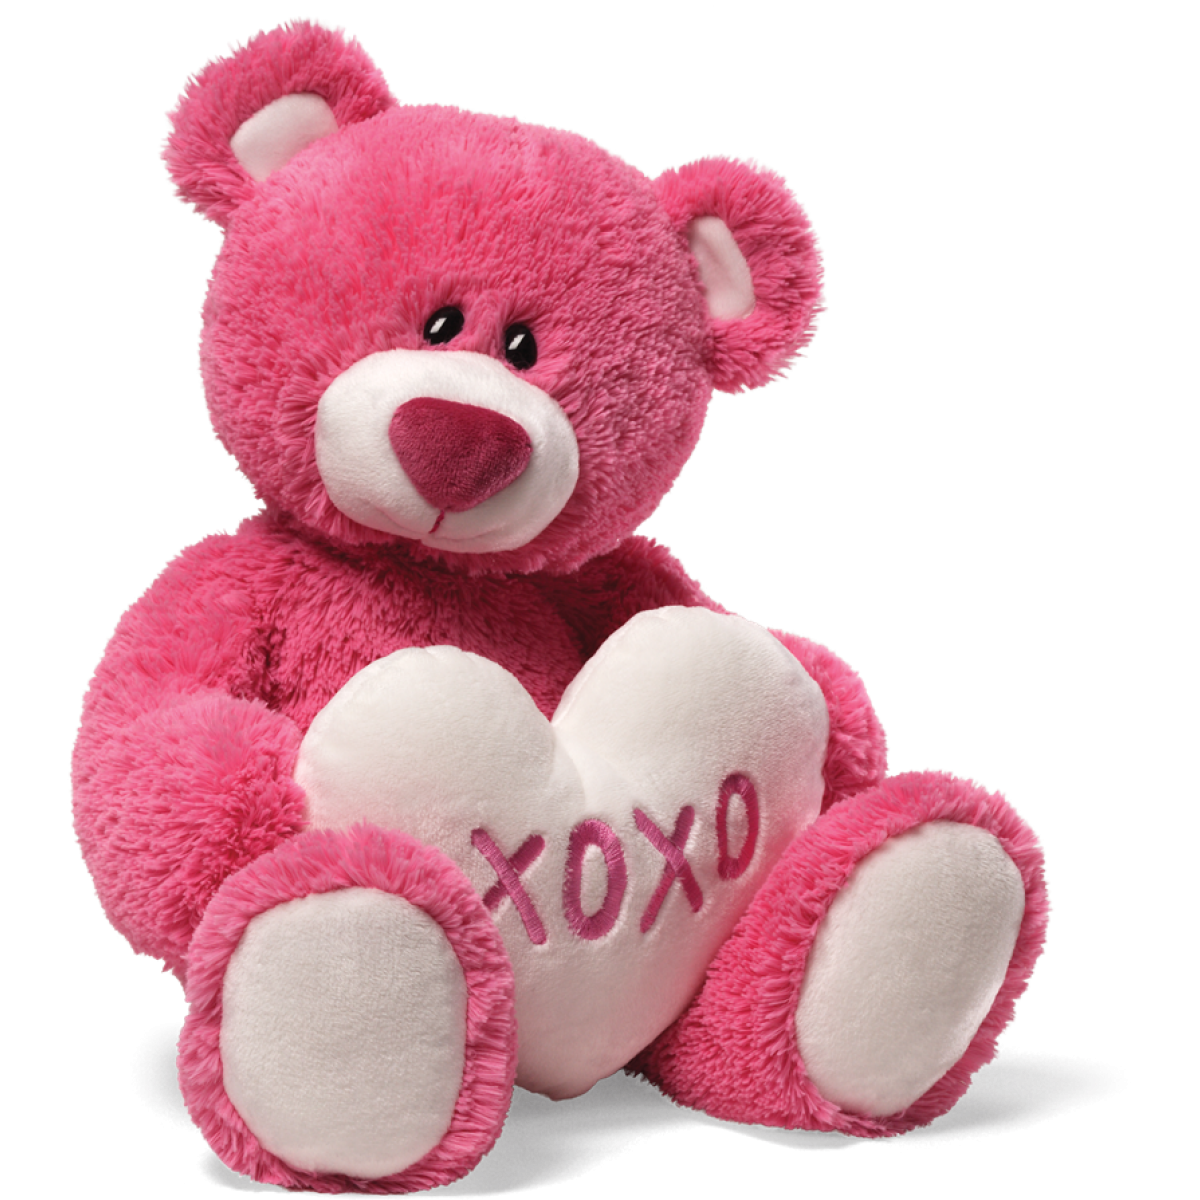 Teddy Bear Png Hd PNG Image